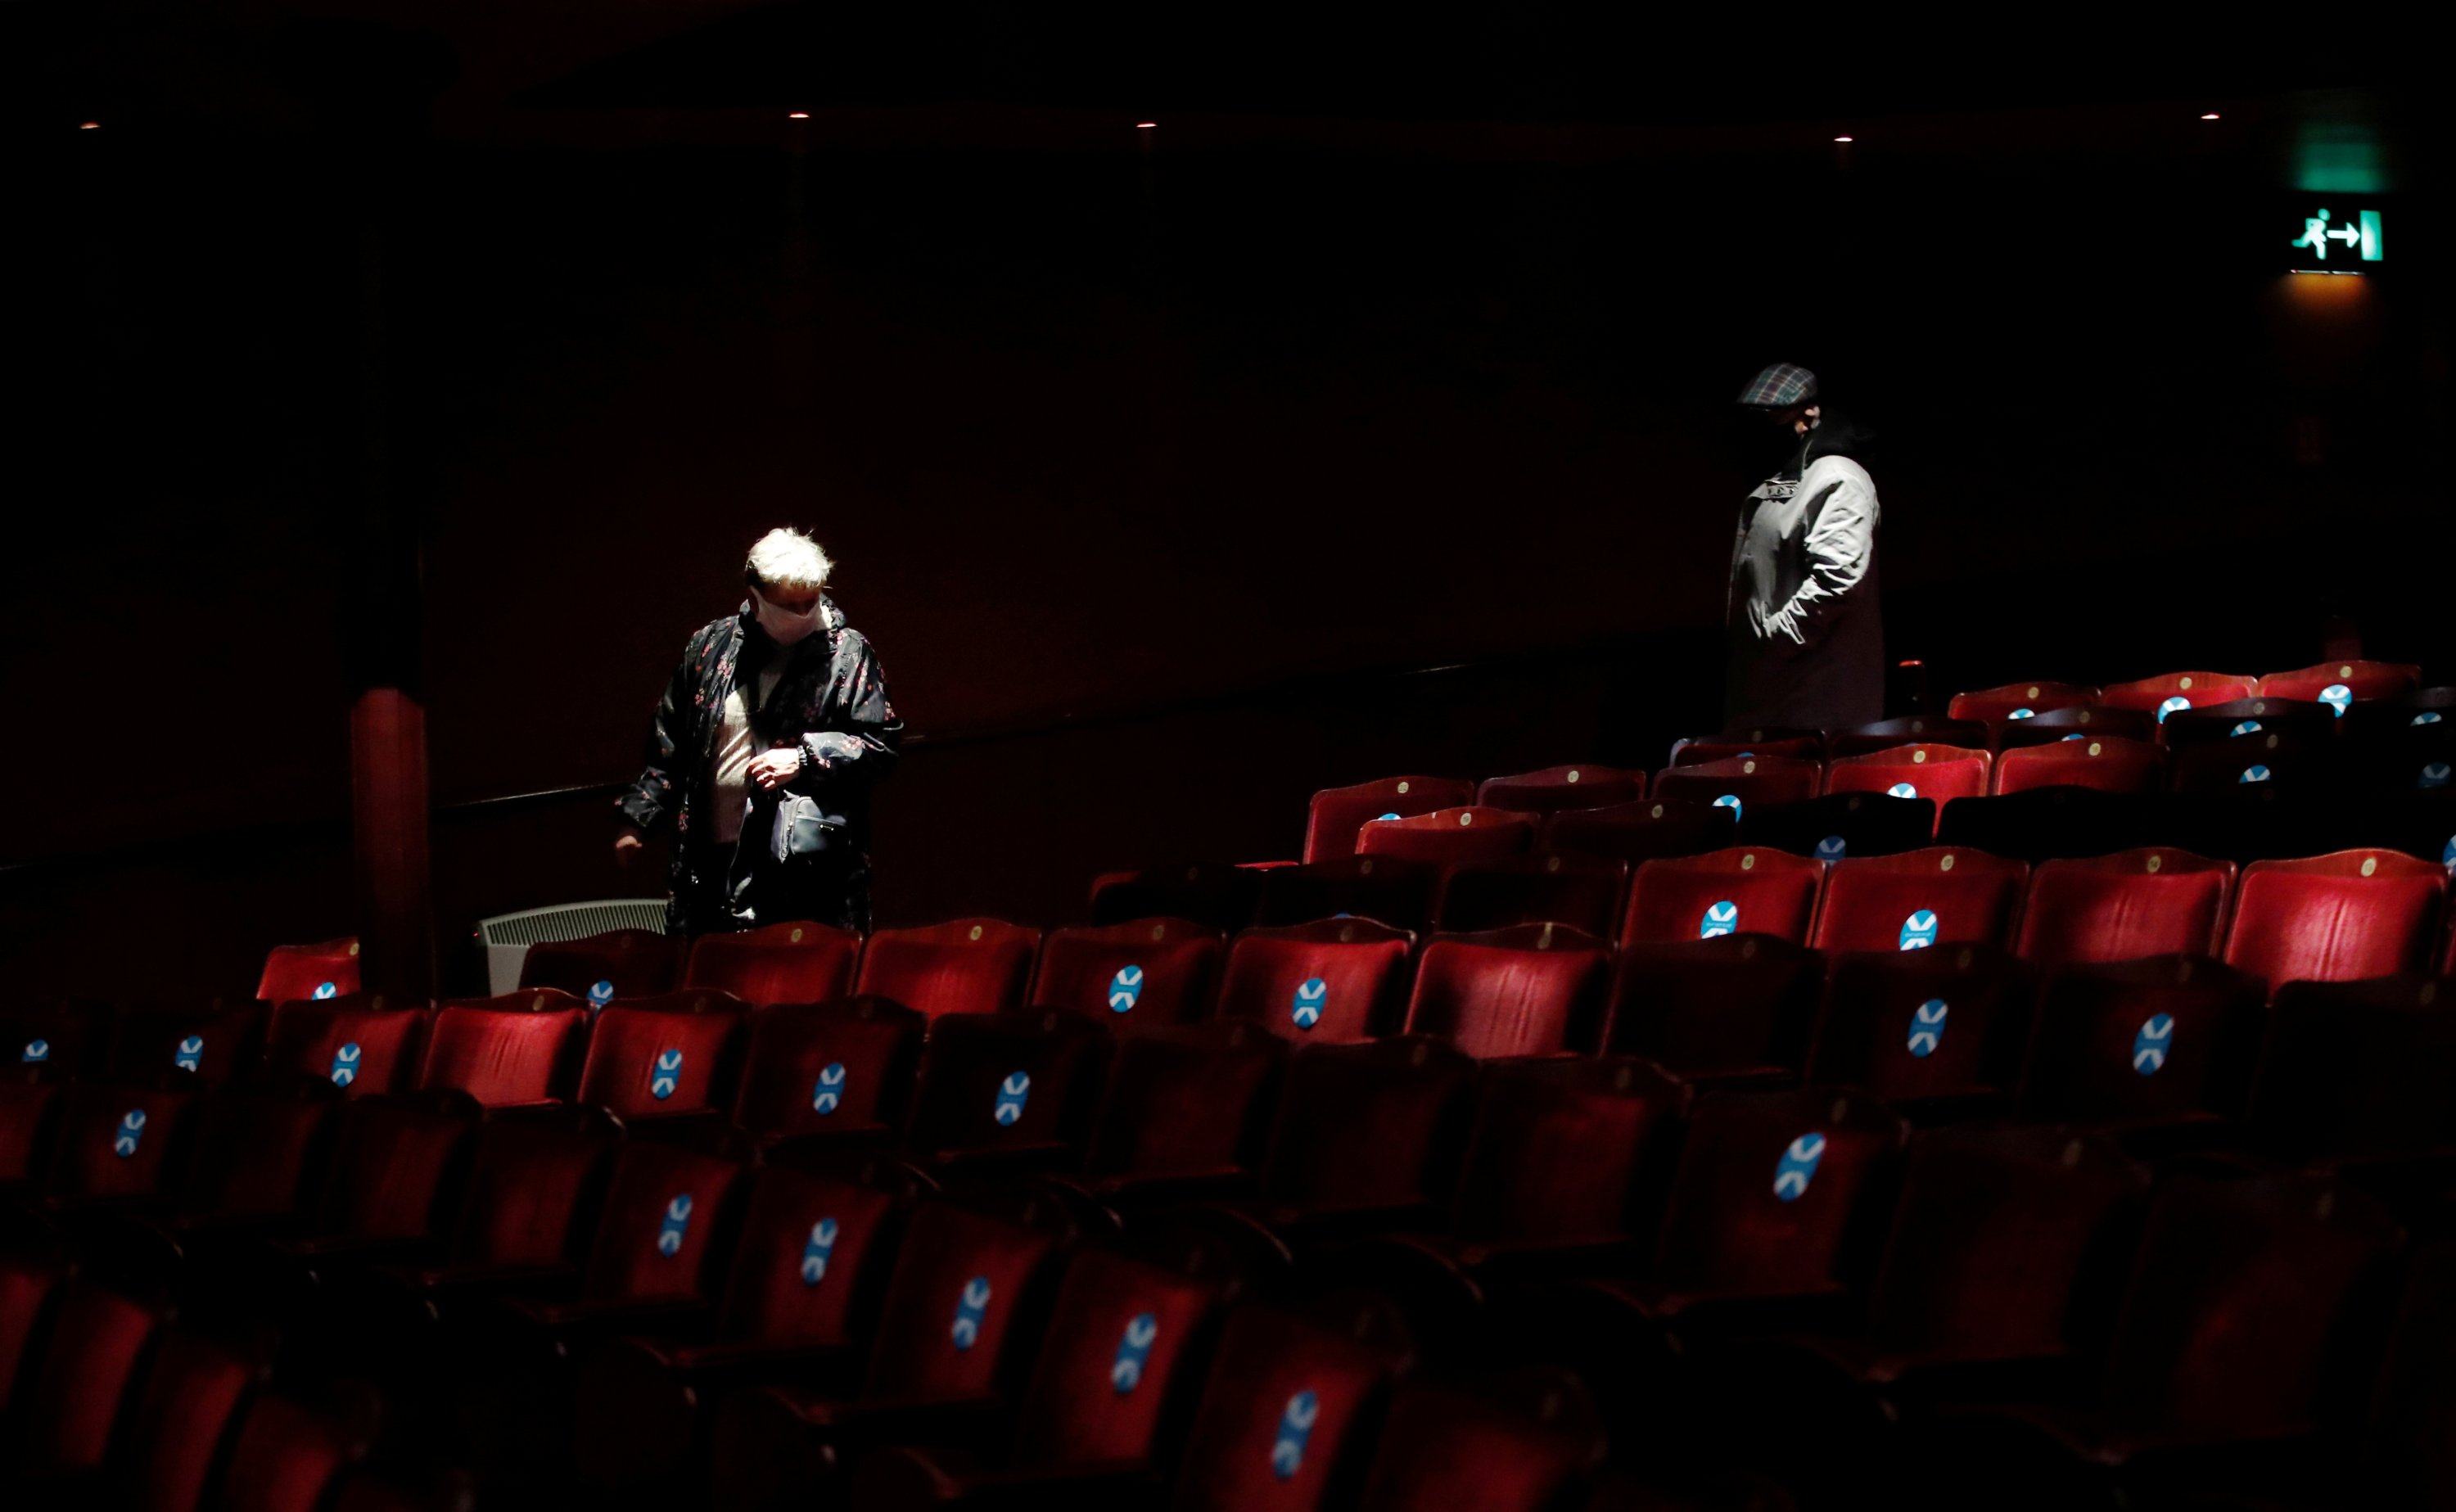 Audience members arrive at the Royal & Derngate ahead of the start of the National Youth Theatre's co-production of 'Animal Farm' as COVID-19 restrictions continue to ease, in Northampton, U.K., May 17, 2021. (Reuters Photo)